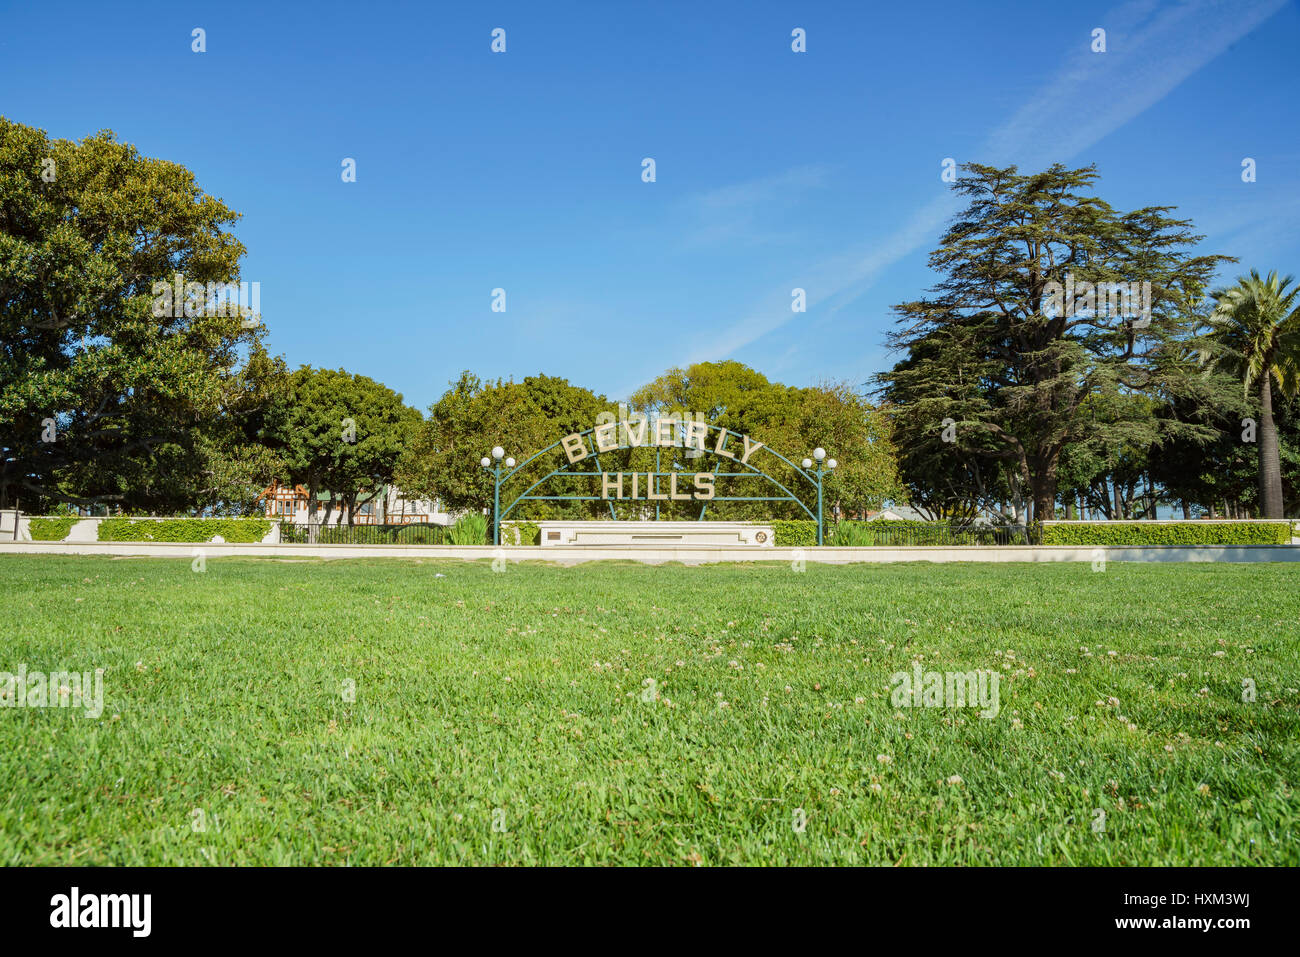 Beverly Hills, MAR 24: Beverly Hills Sign on MAR 24, 2017 at Beverly Gardens Park, Los Angeles, California - Stock Image